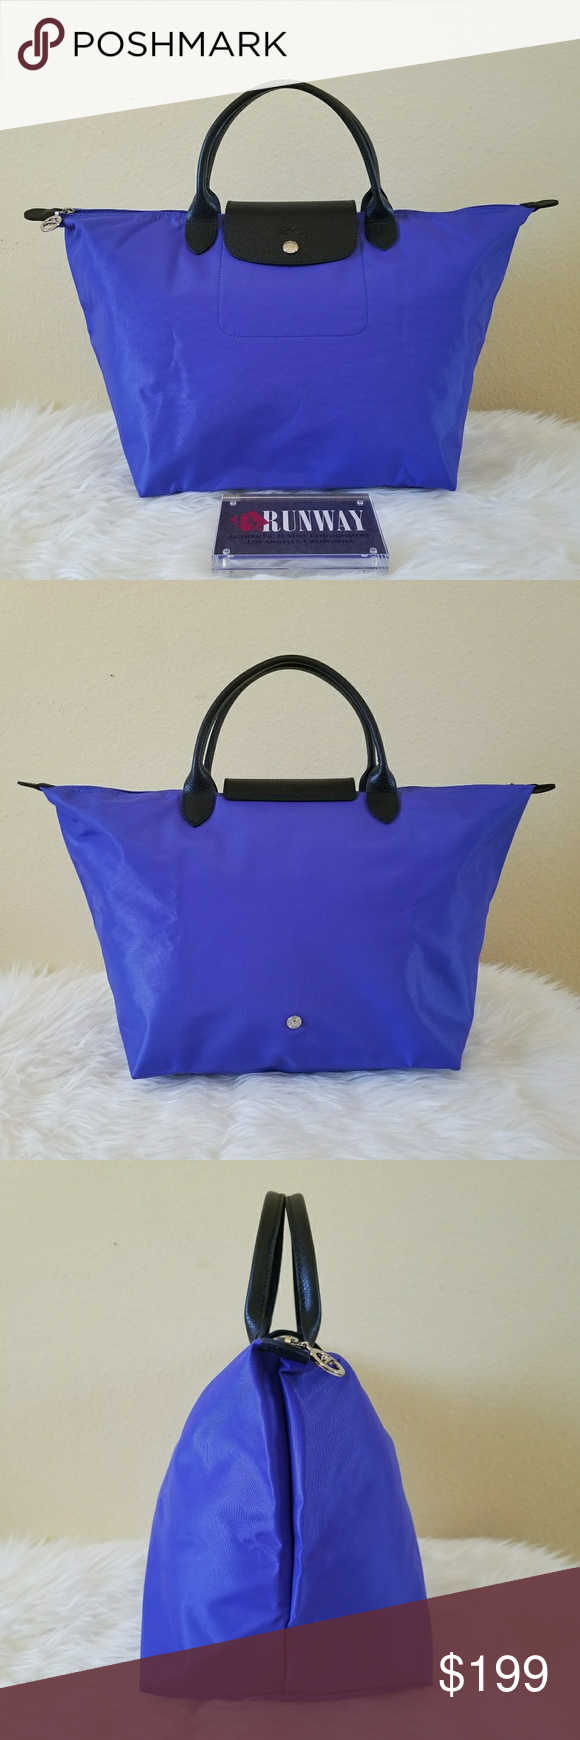 c351936268eb Longchamp Le Pliage Type M Sarah Morris Longchamp Le Pliage Type M Sarah  Morris Limited Edition (Made in France) in like new condition